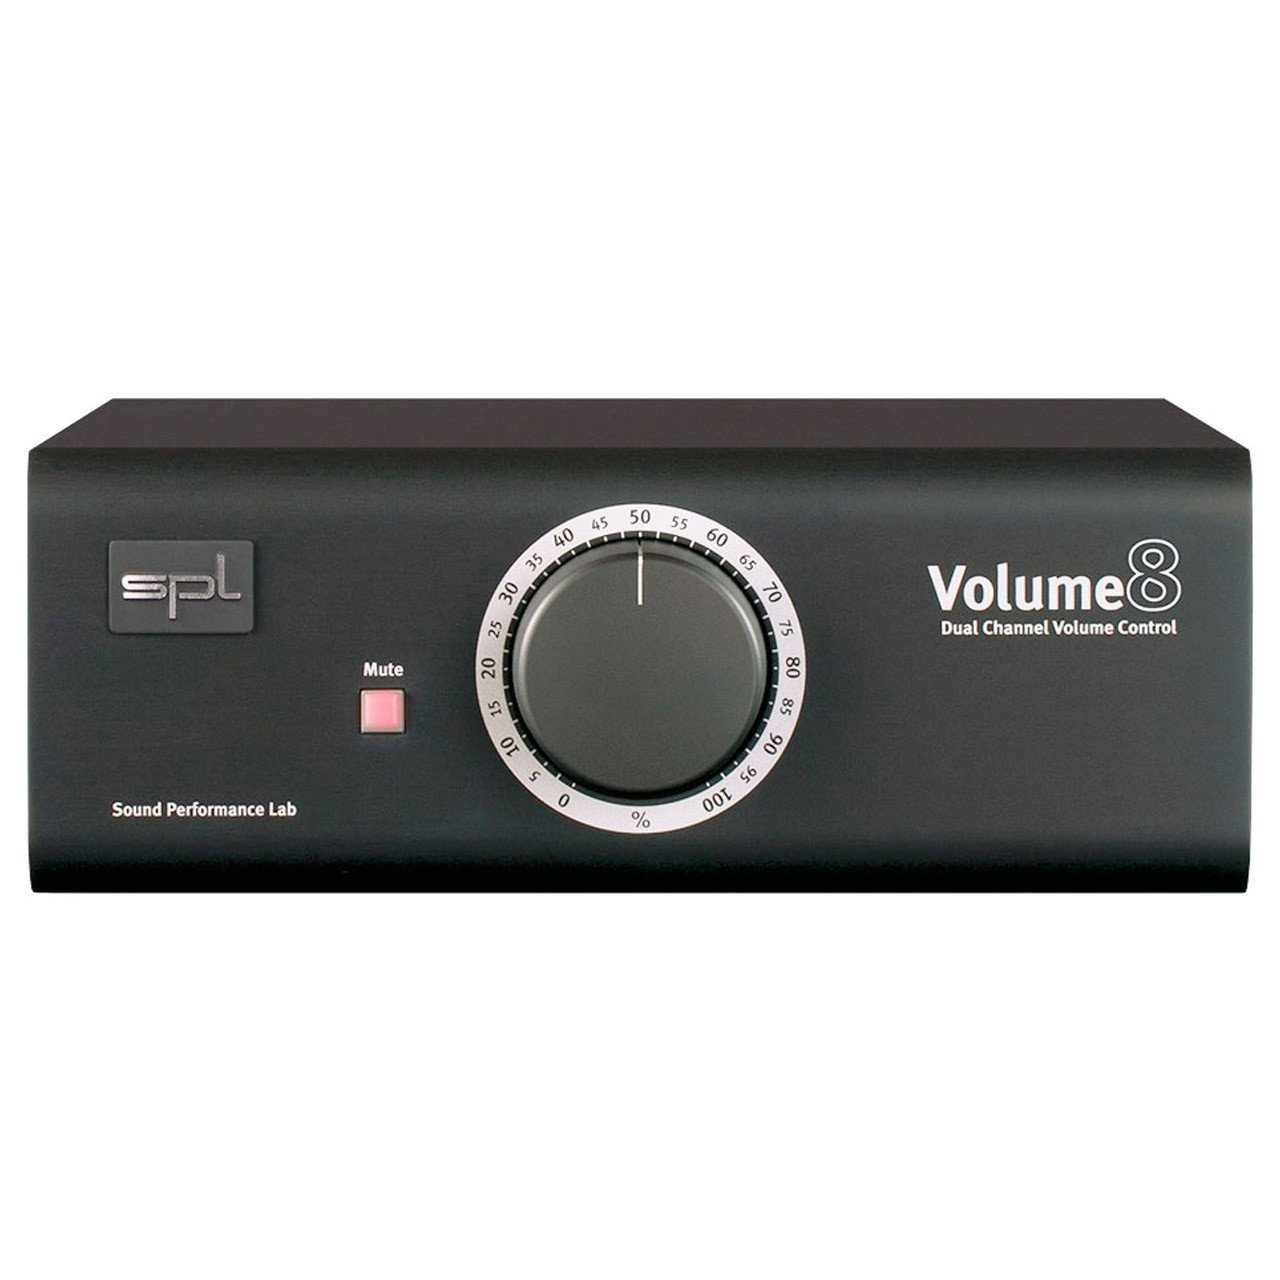 Monitor Controllers - SPL Volume 8 - 8-channel Volume Controller